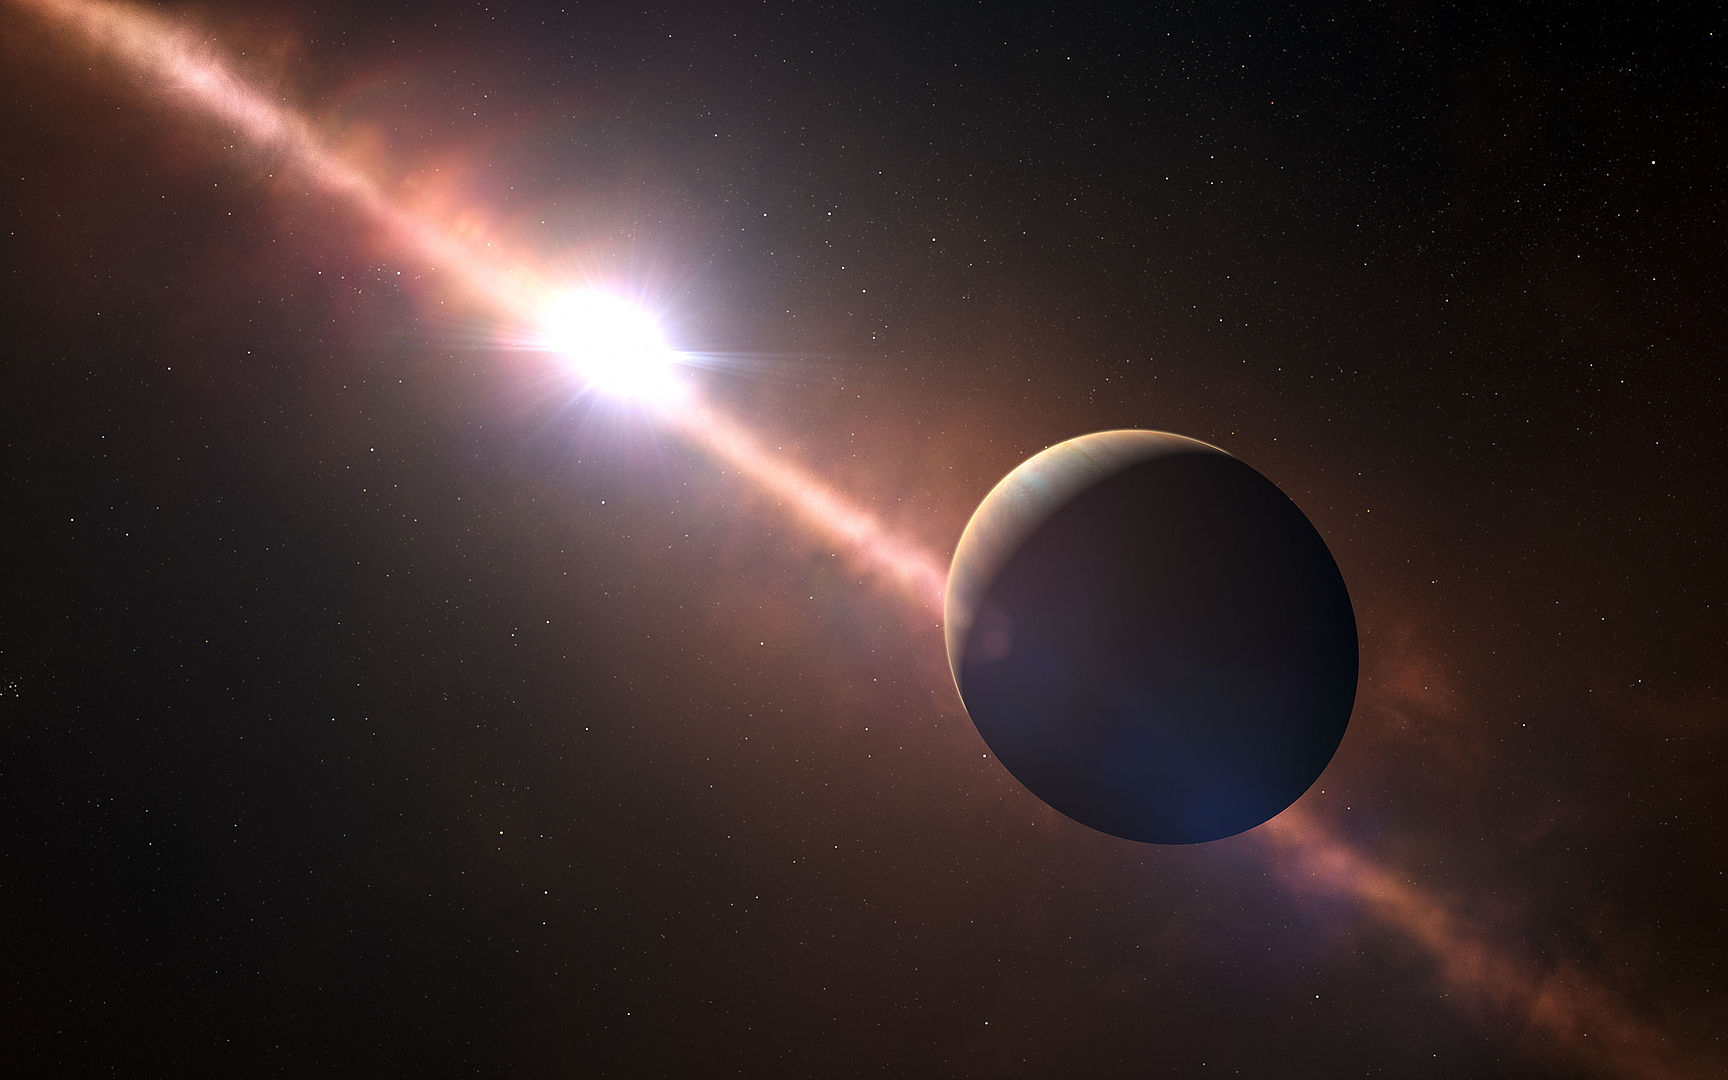 Alignment of a Star and a Planet